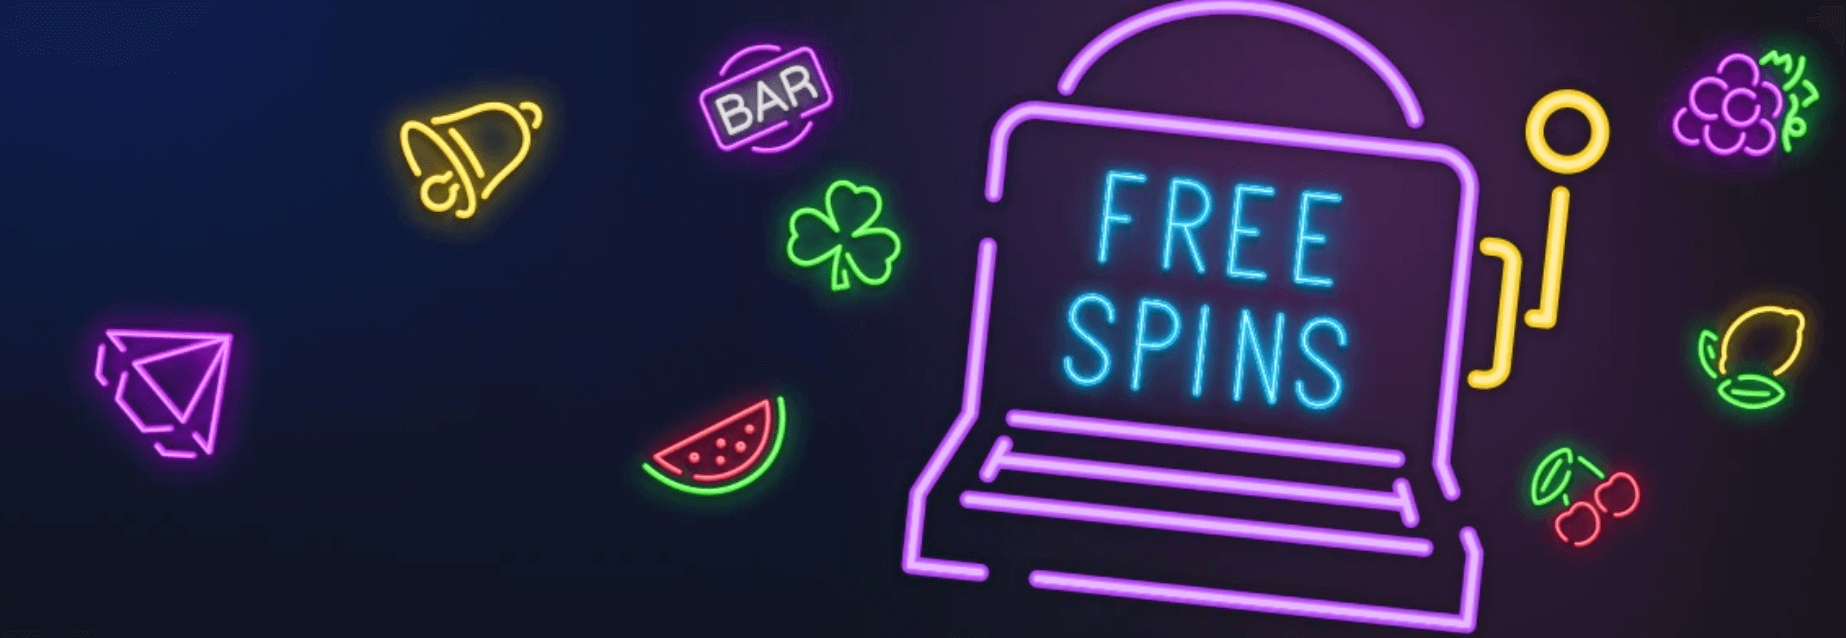 Where to look for free spins